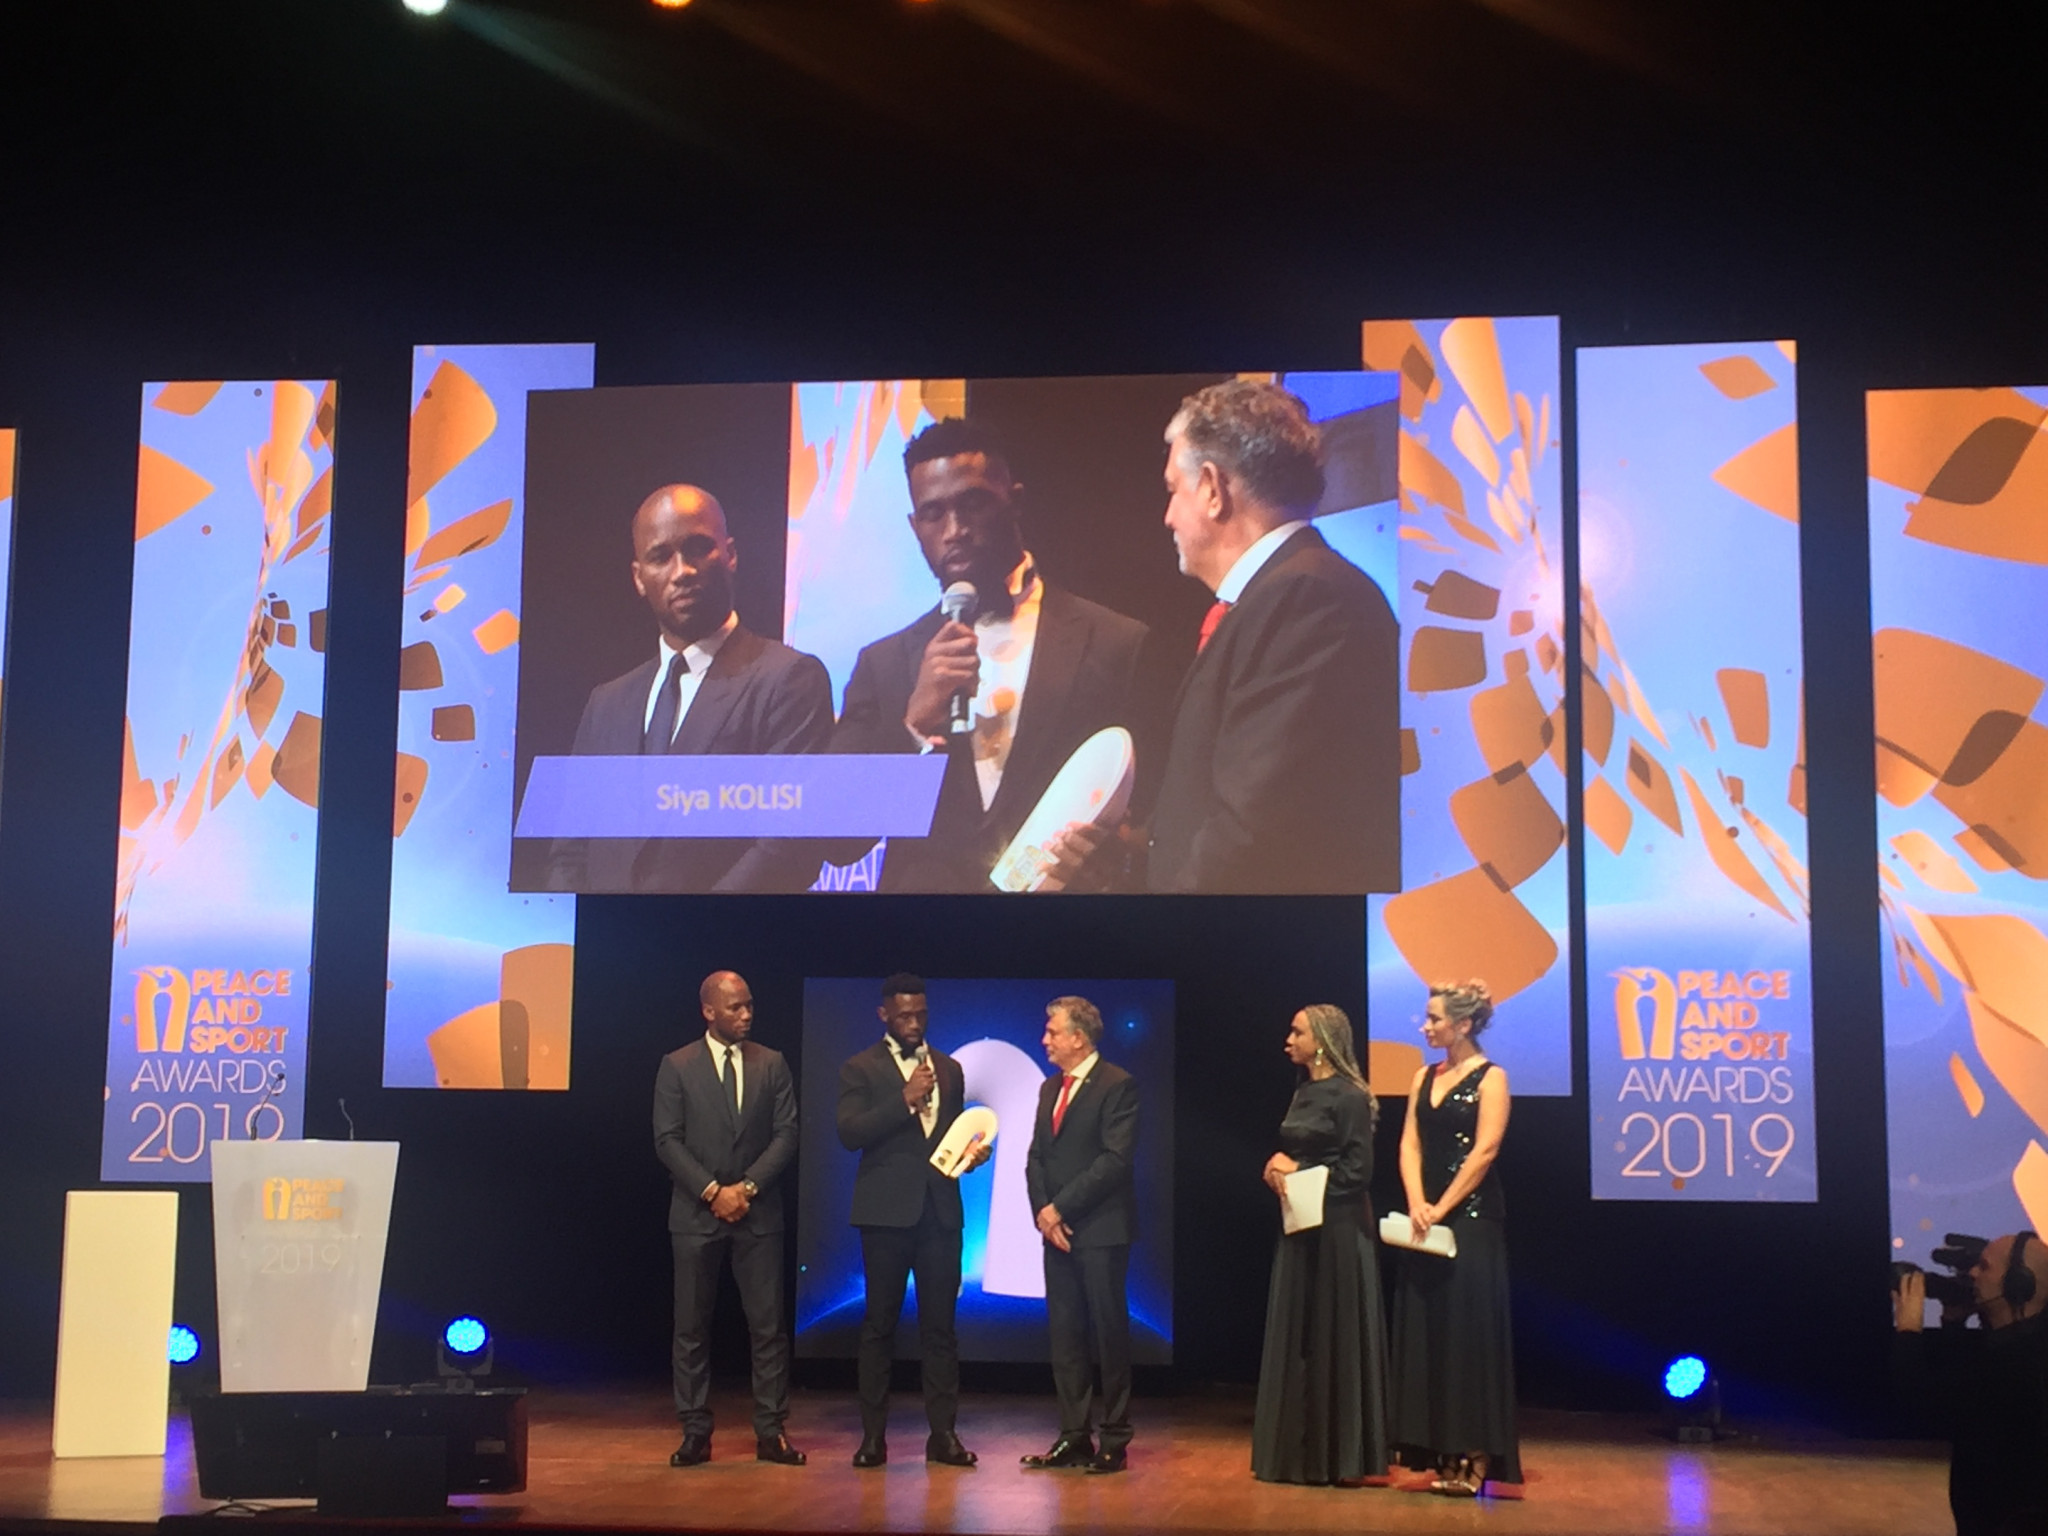 South African Rugby World Cup winner Siya Kolisi was named Champion of the Year ©ITG